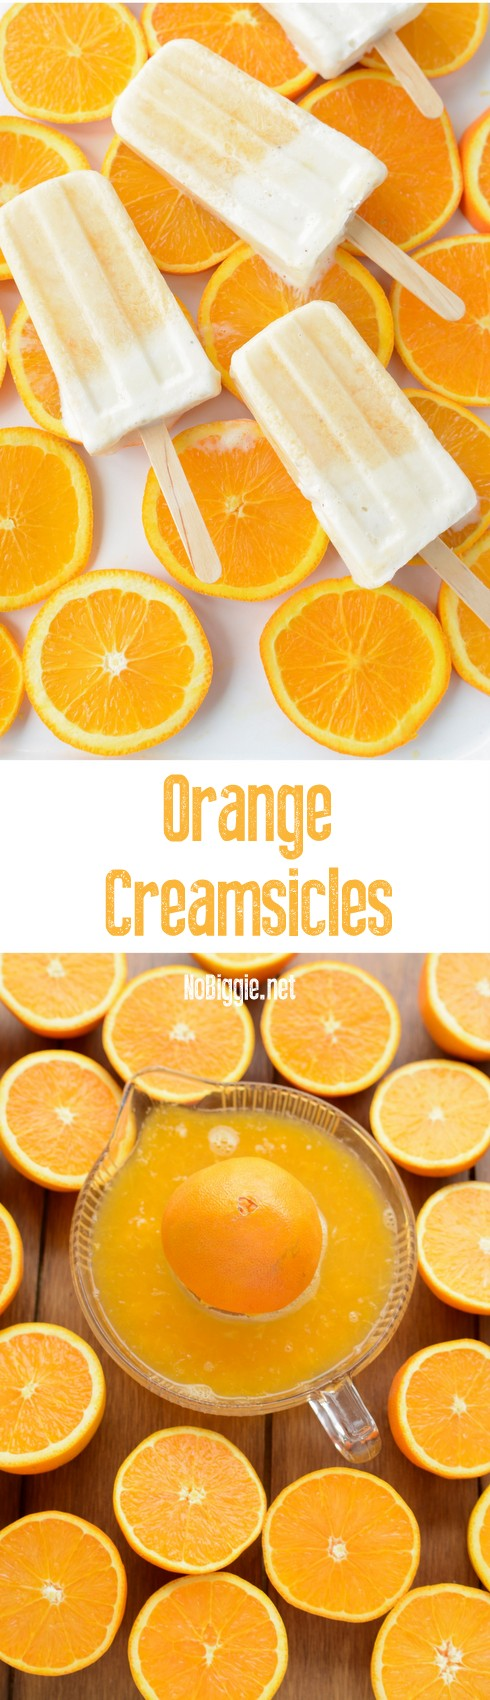 http://www.nobiggie.net/wp-content/uploads/2016/05/Orange-creamsicles.jpg